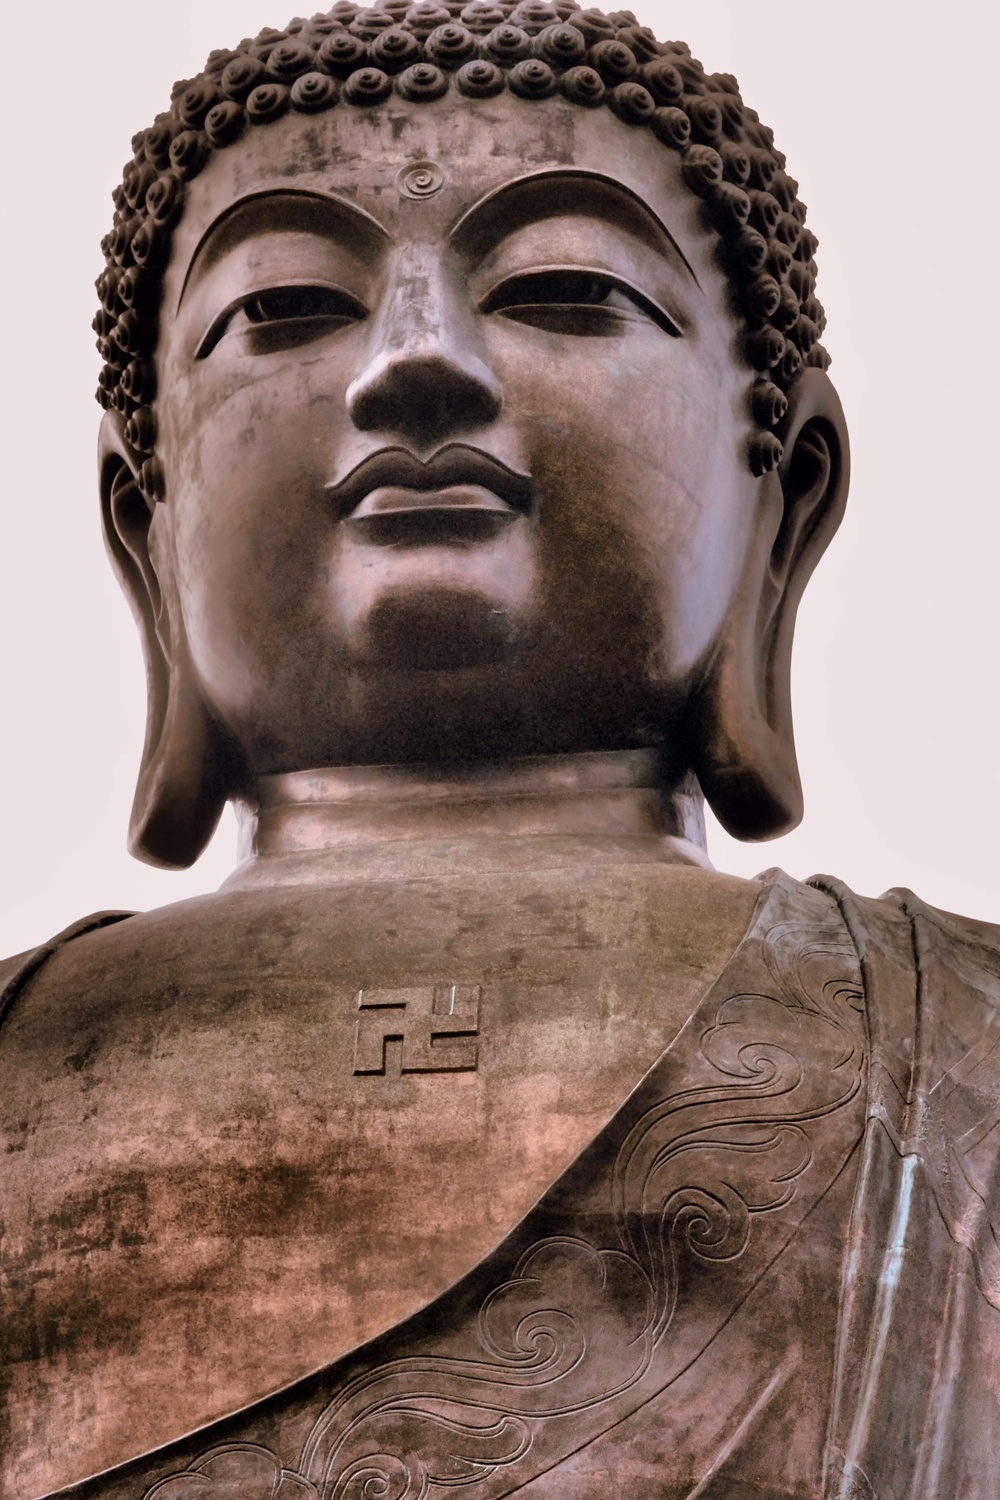 That is not a swastika but a Buddhist symbol of peace